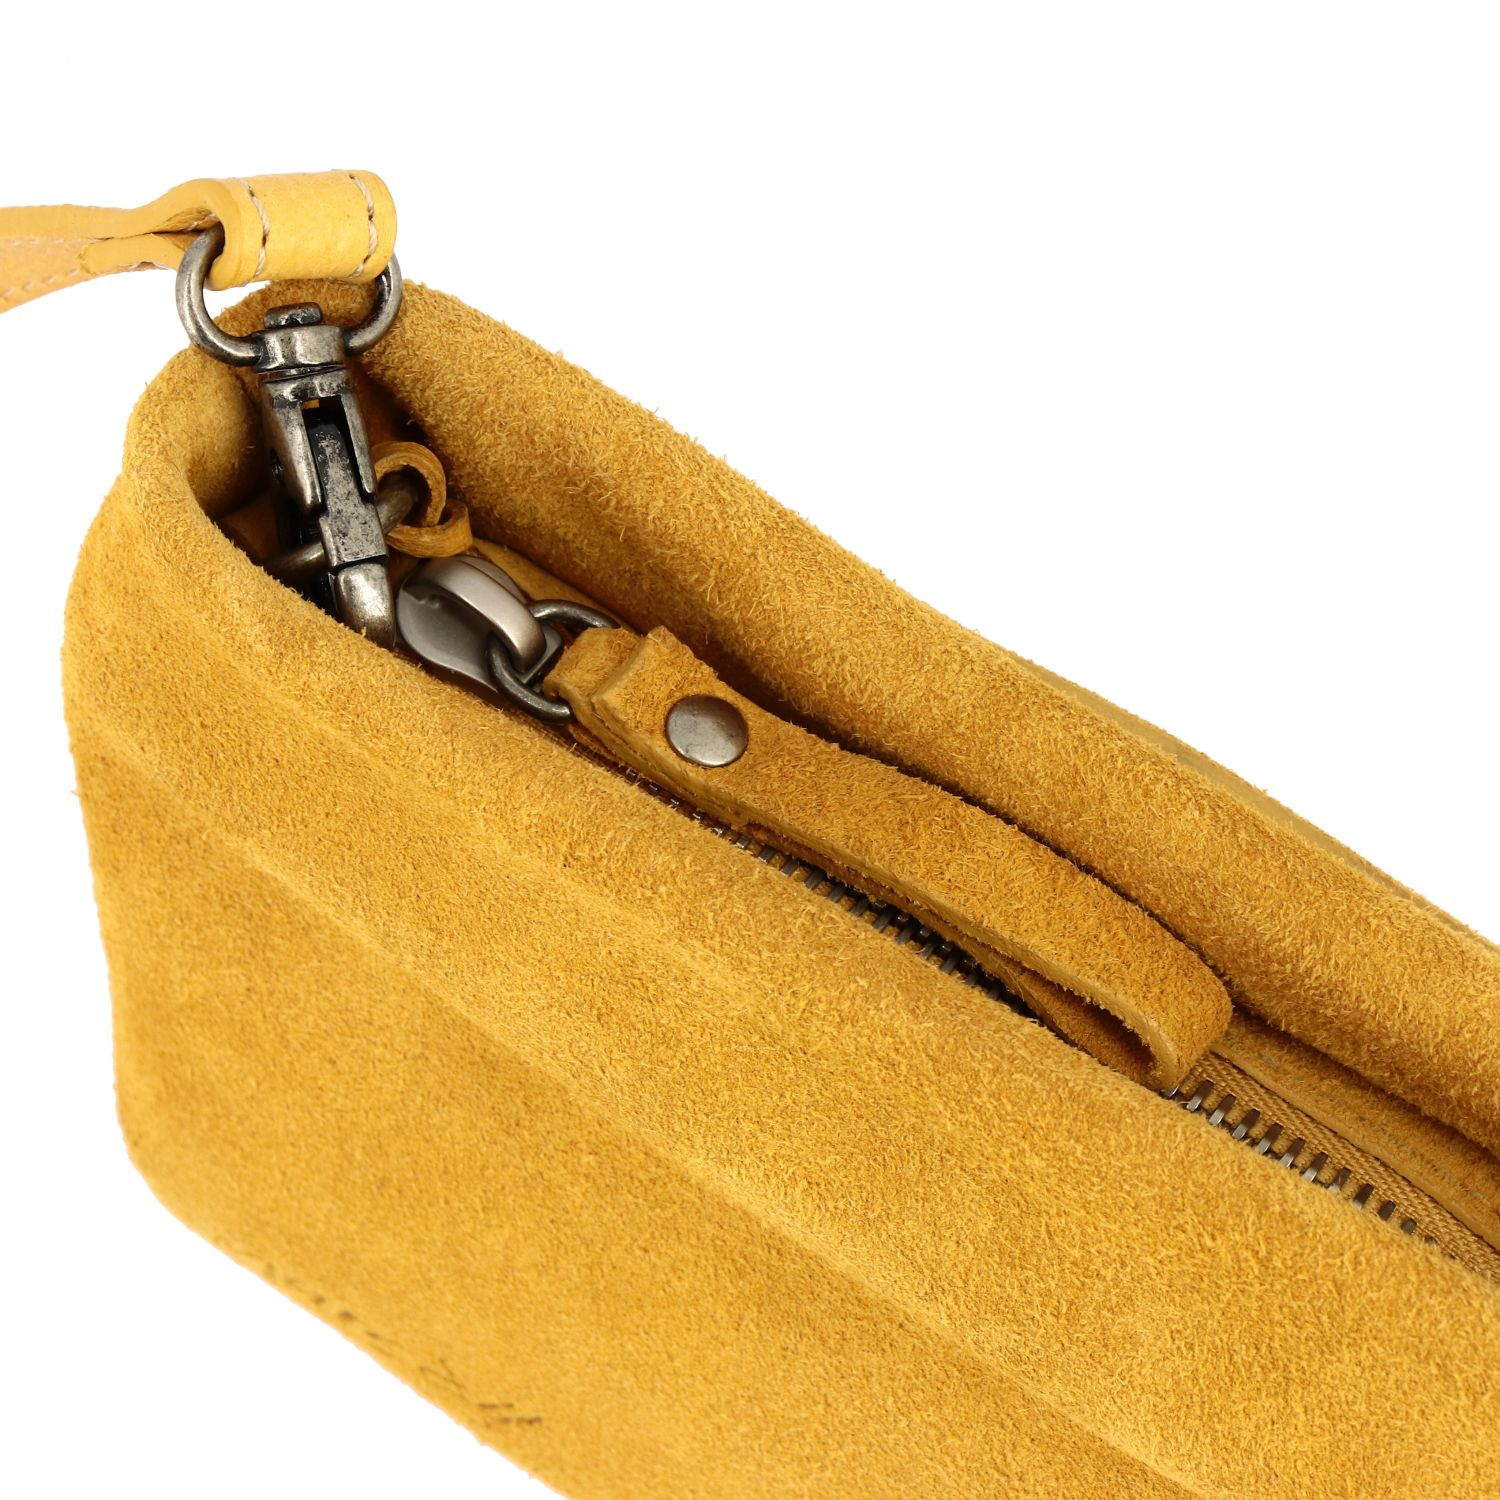 Marsell Fantasmetto shoulder bag in suede yellow 4